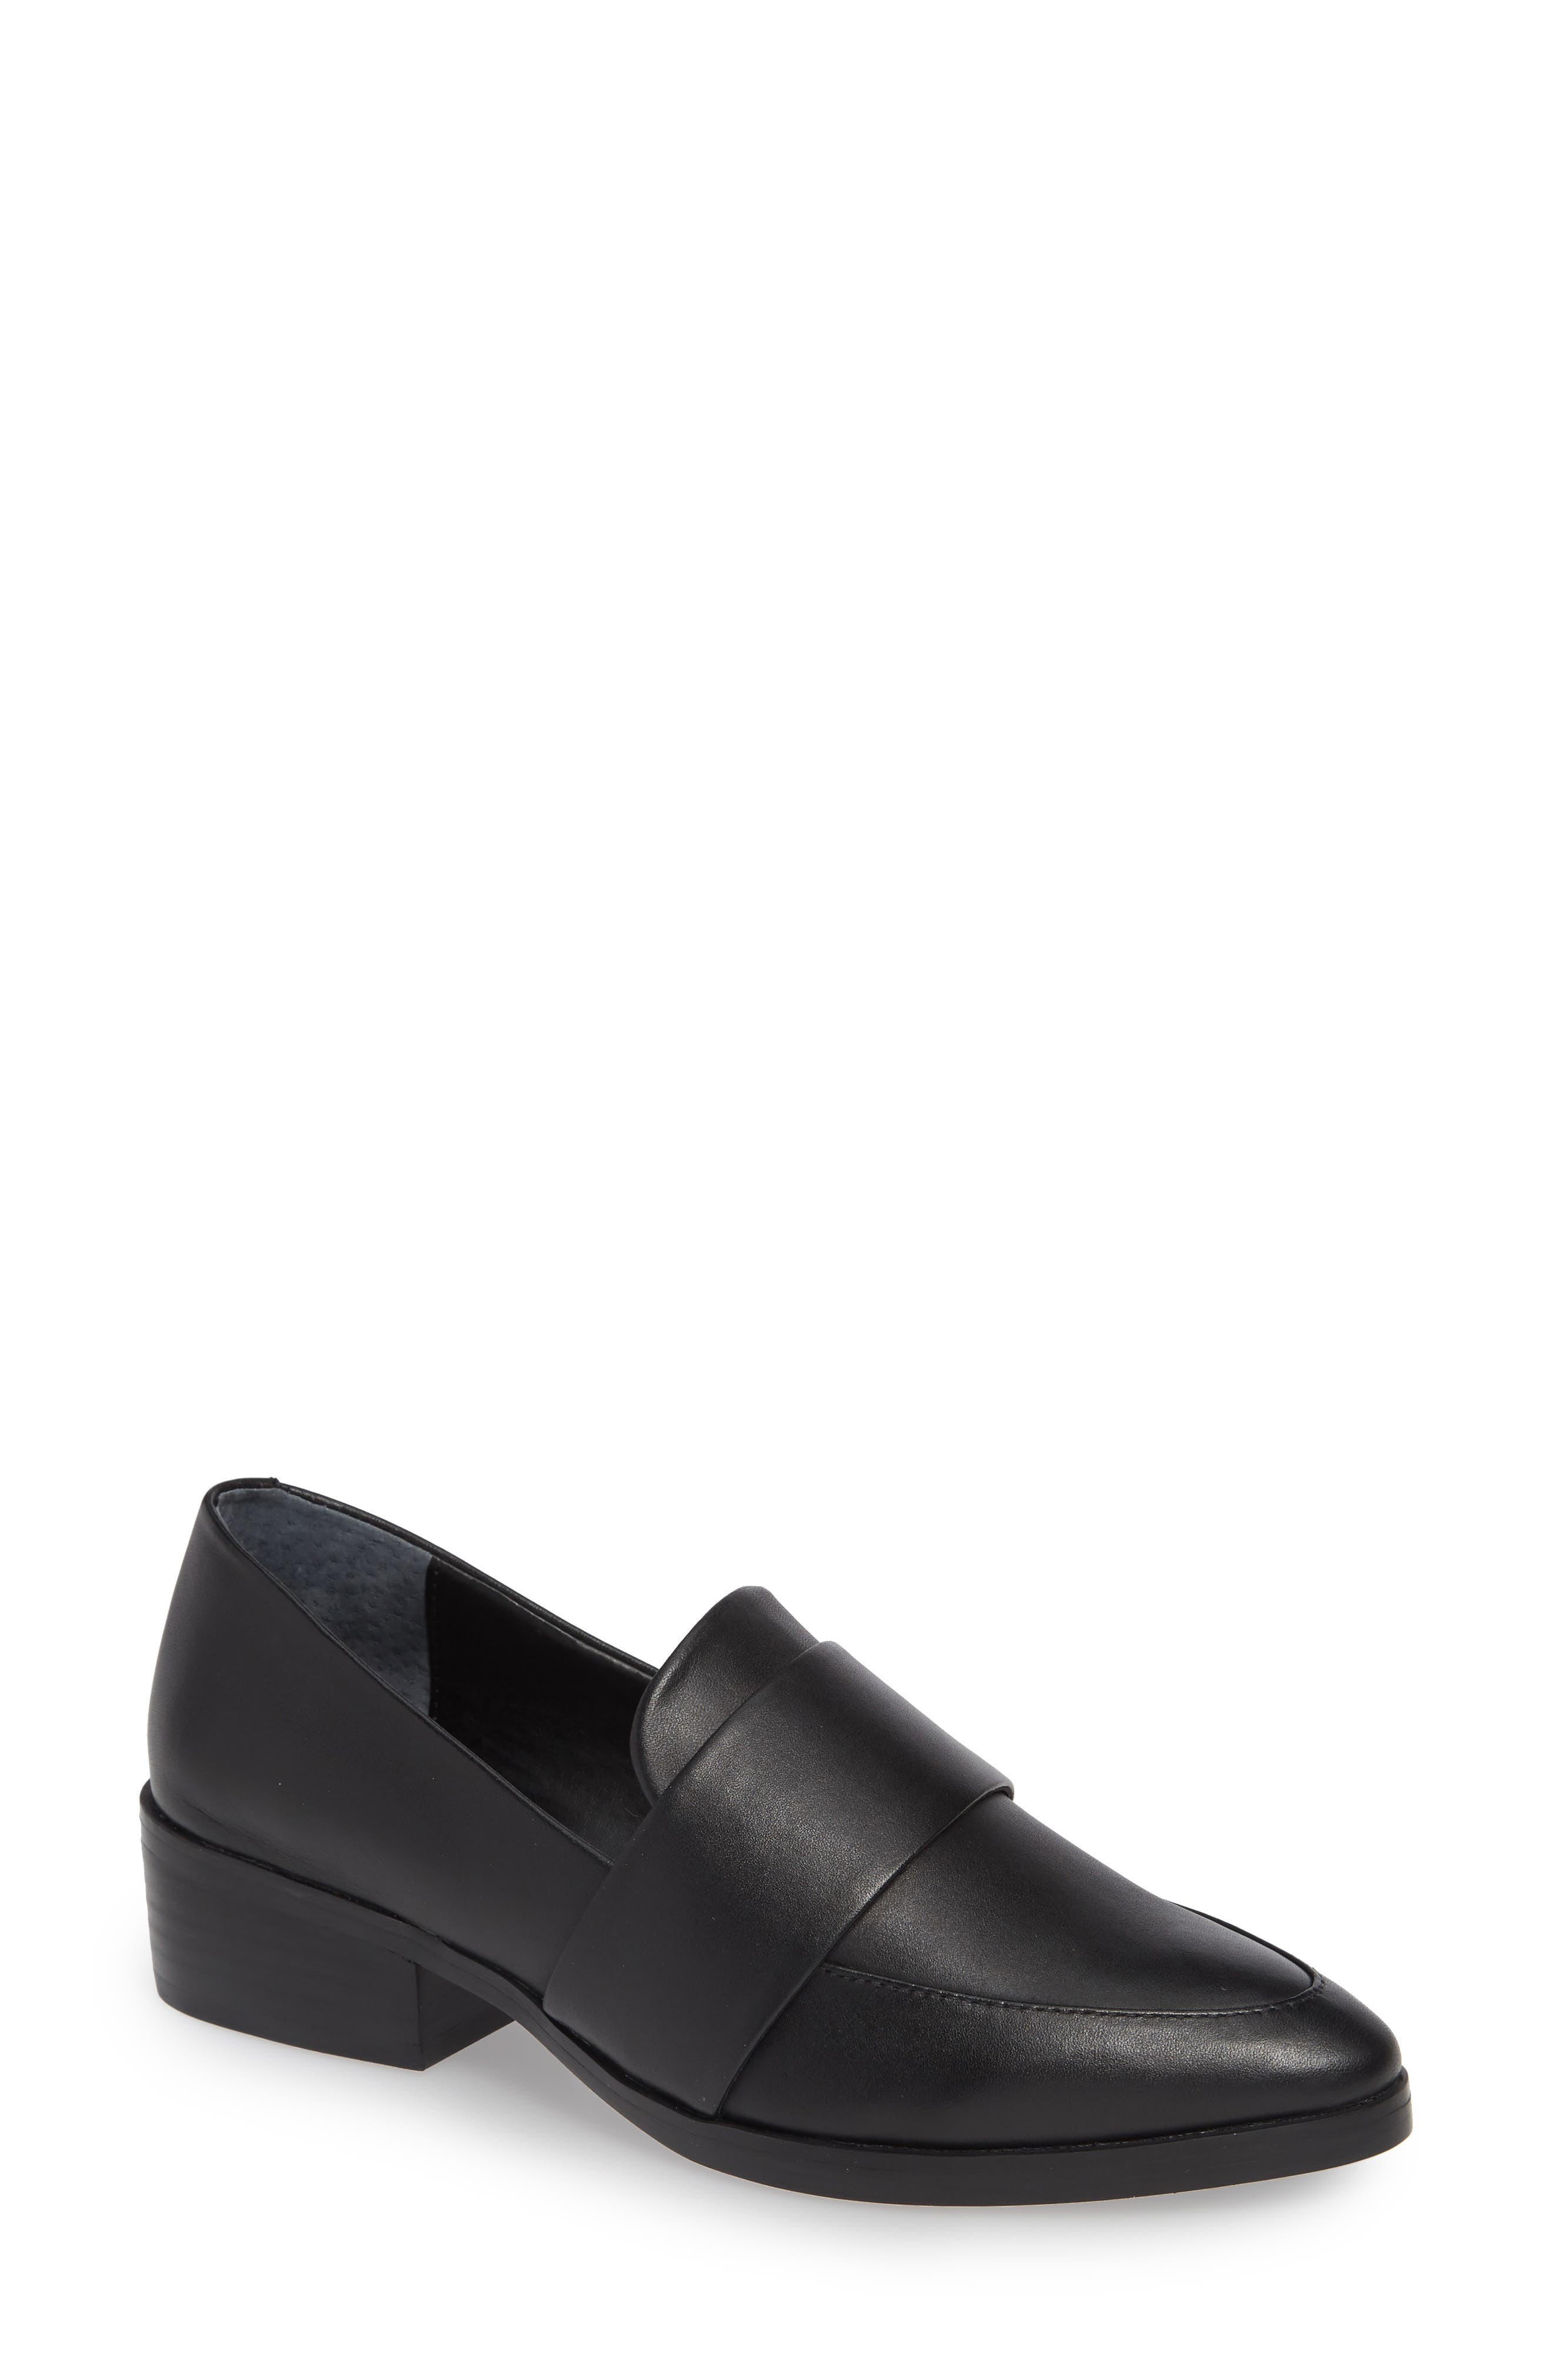 TONY BIANCO, Mayfair Loafer, Main thumbnail 1, color, BLACK LEATHER